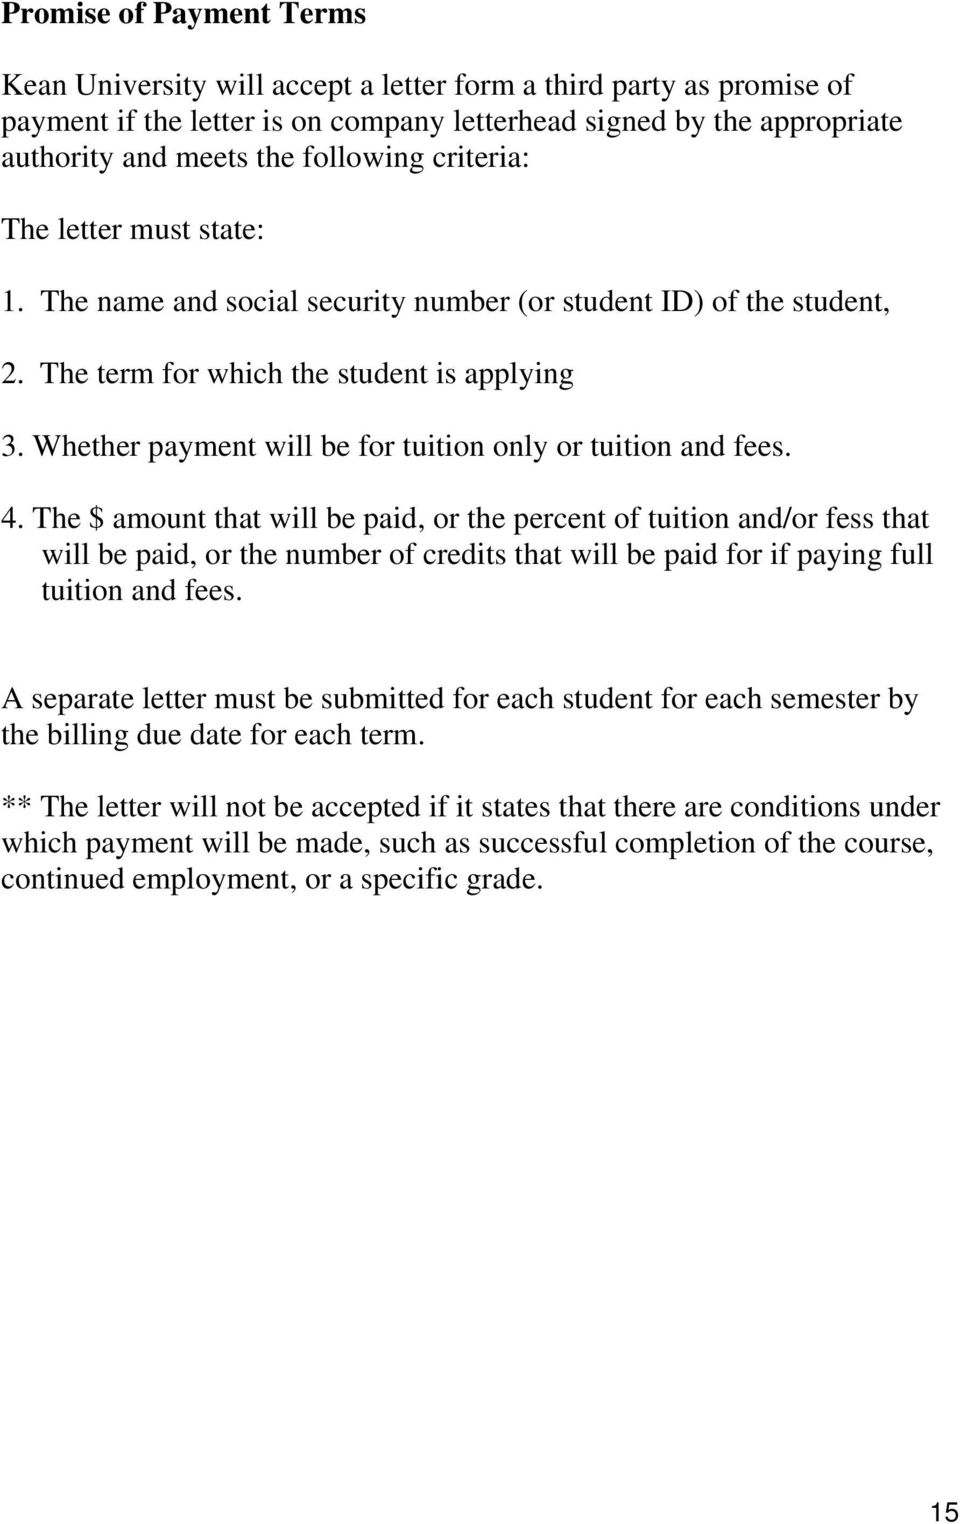 Whether payment will be for tuition only or tuition and fees. 4.